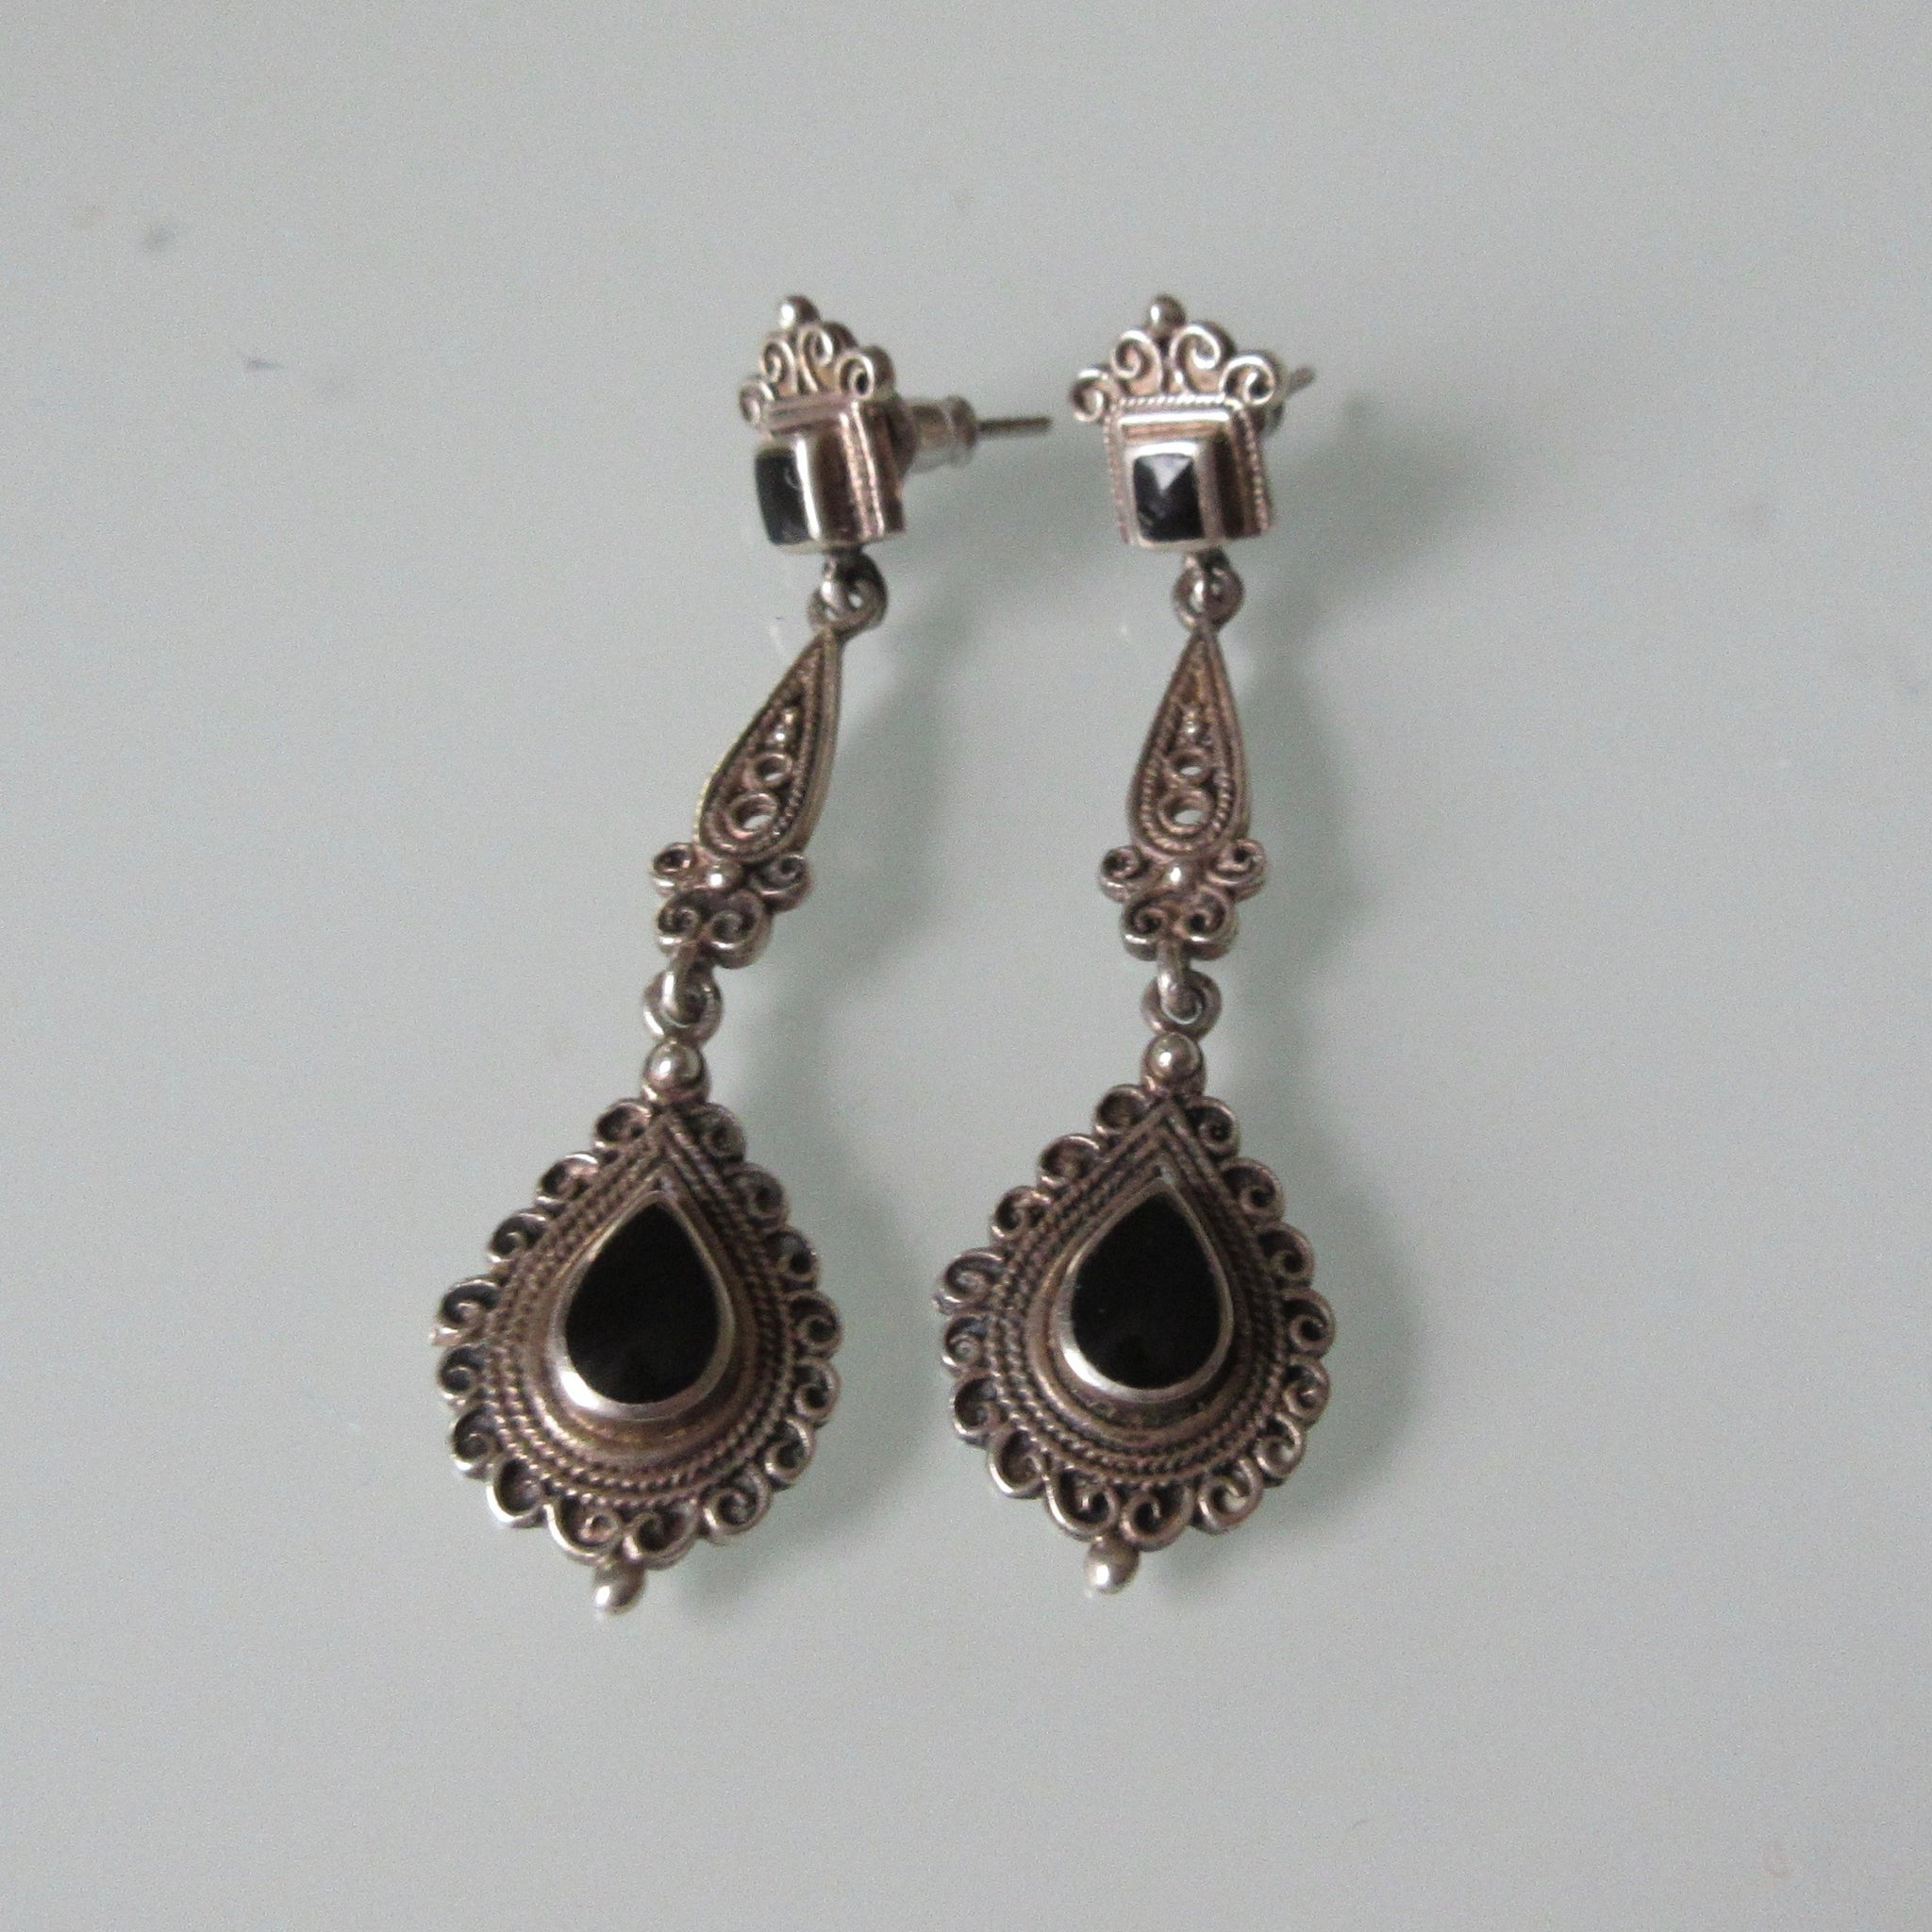 Delicate Filigree Dangle Sterling Silver Earrings